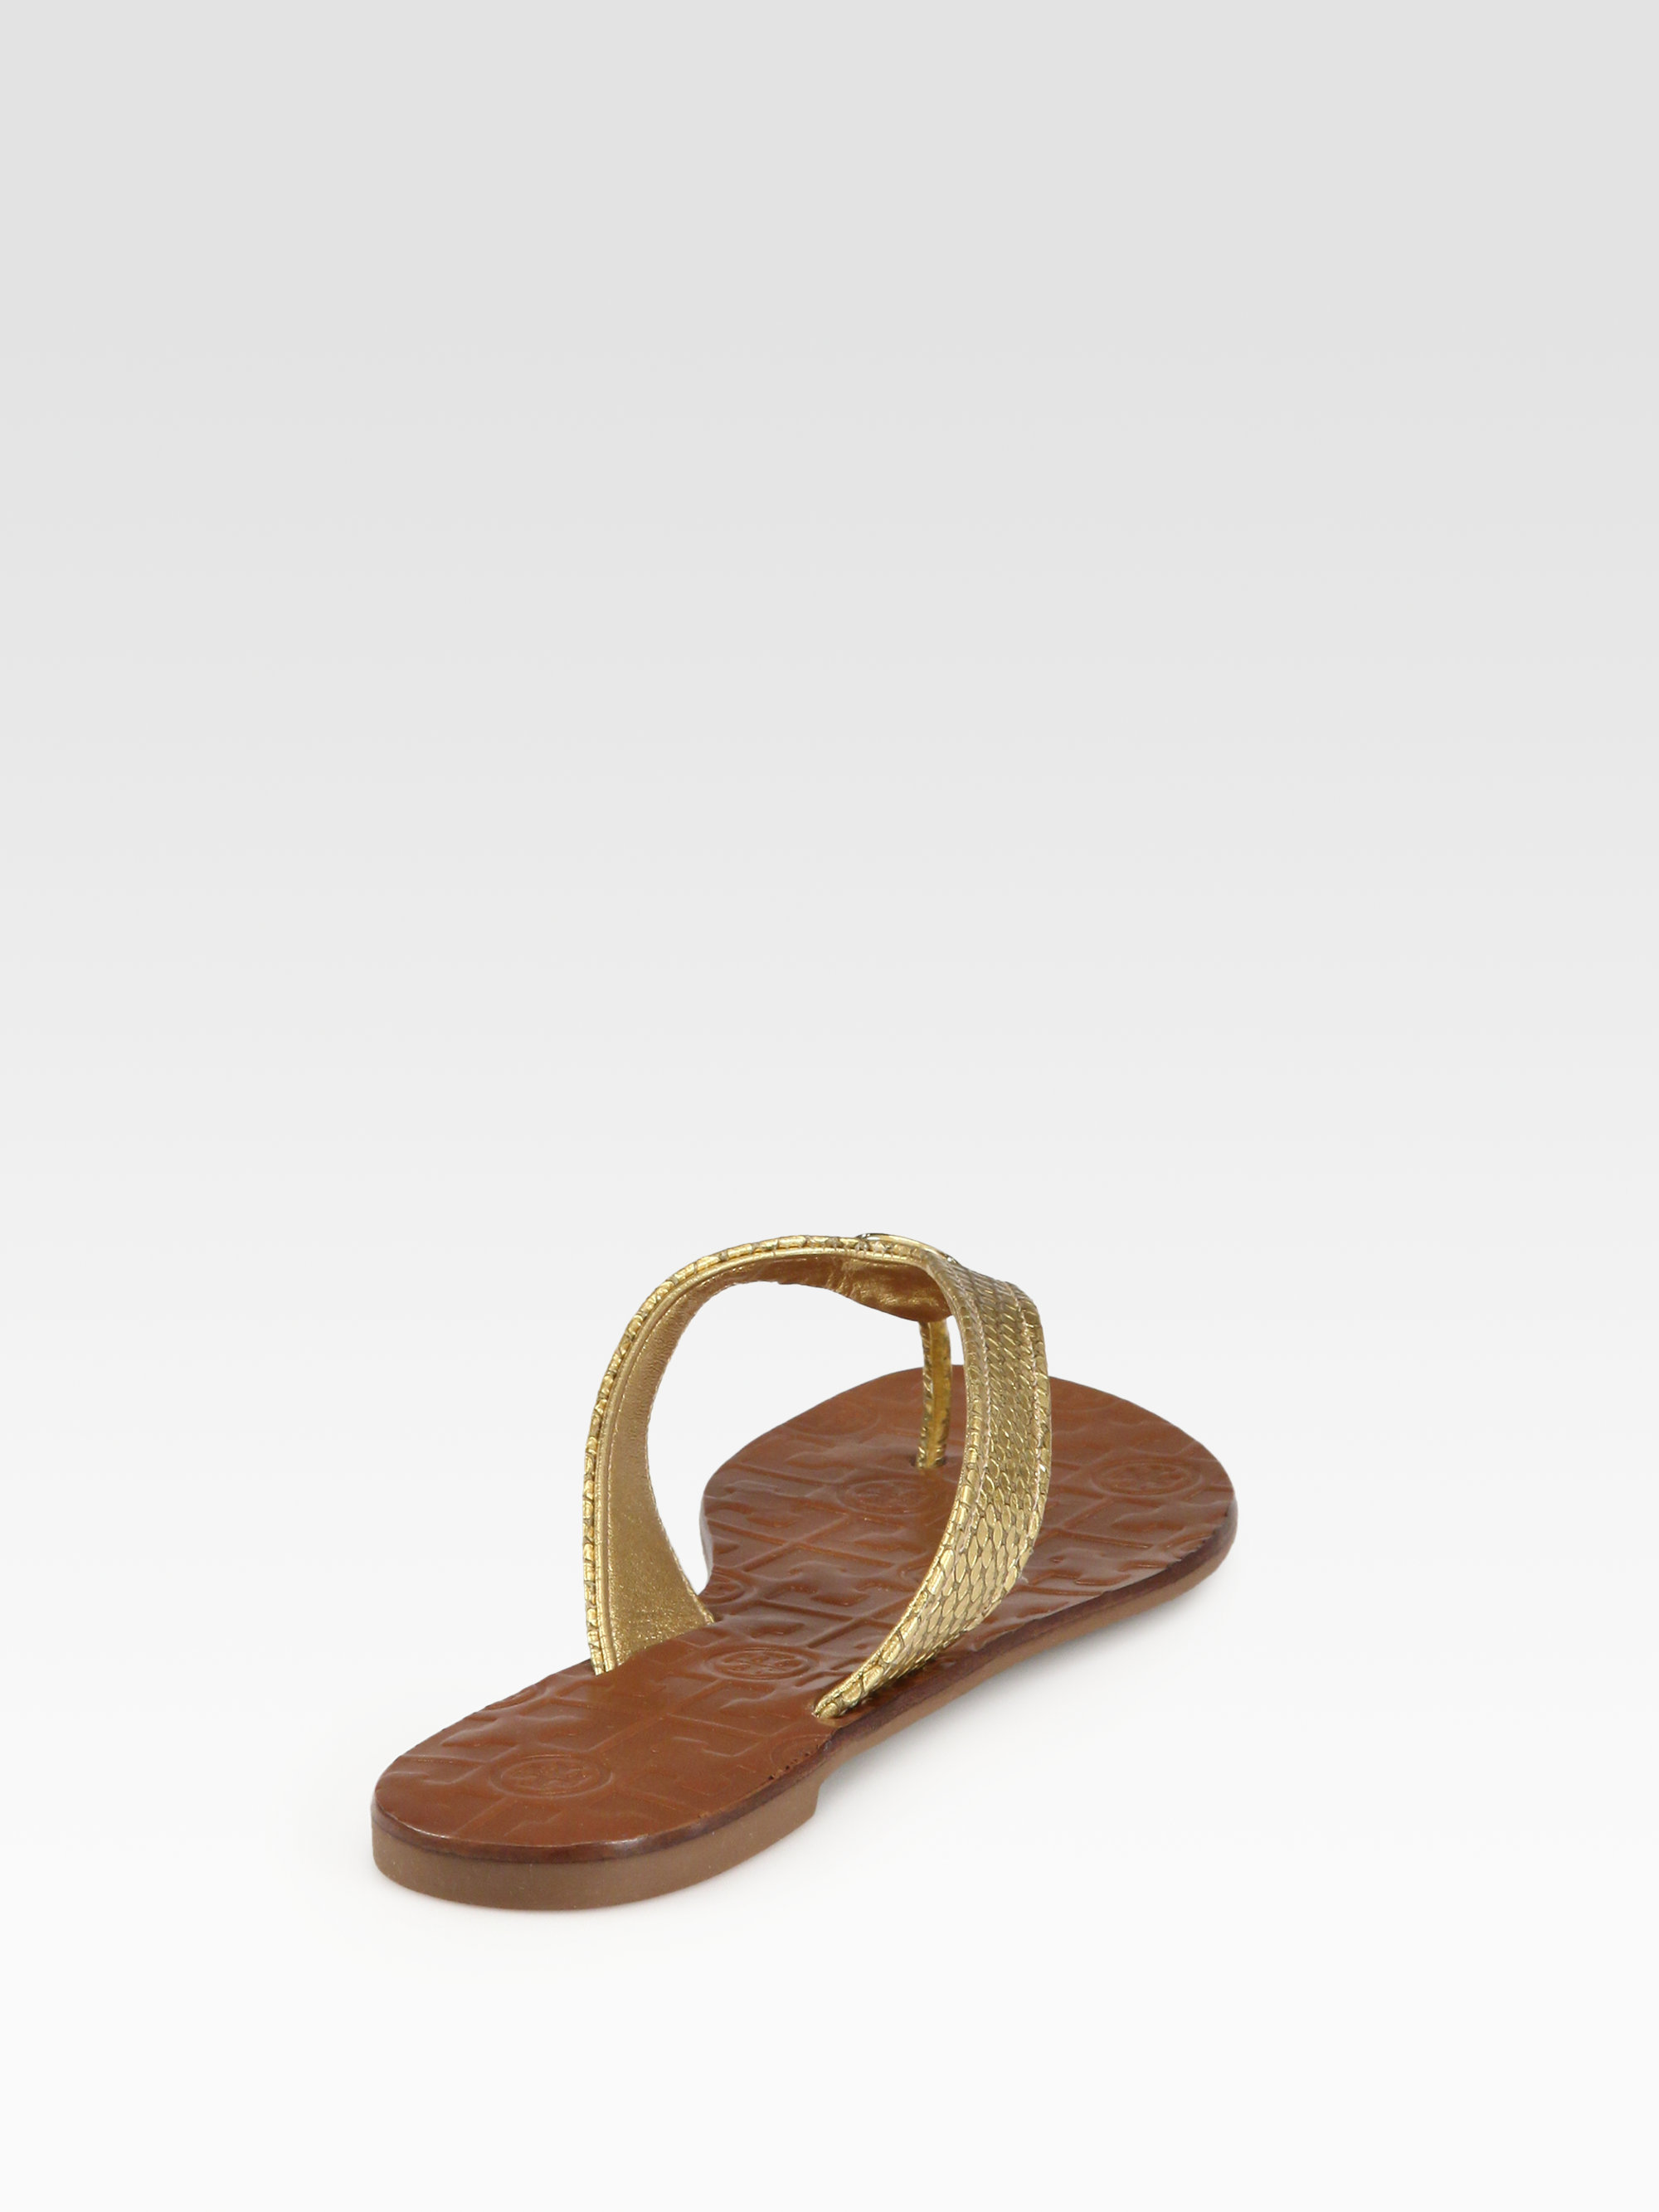 4fc61c32282b Lyst - Tory Burch Thora Metallic Snakeprint Leather Thong Sandals in ...